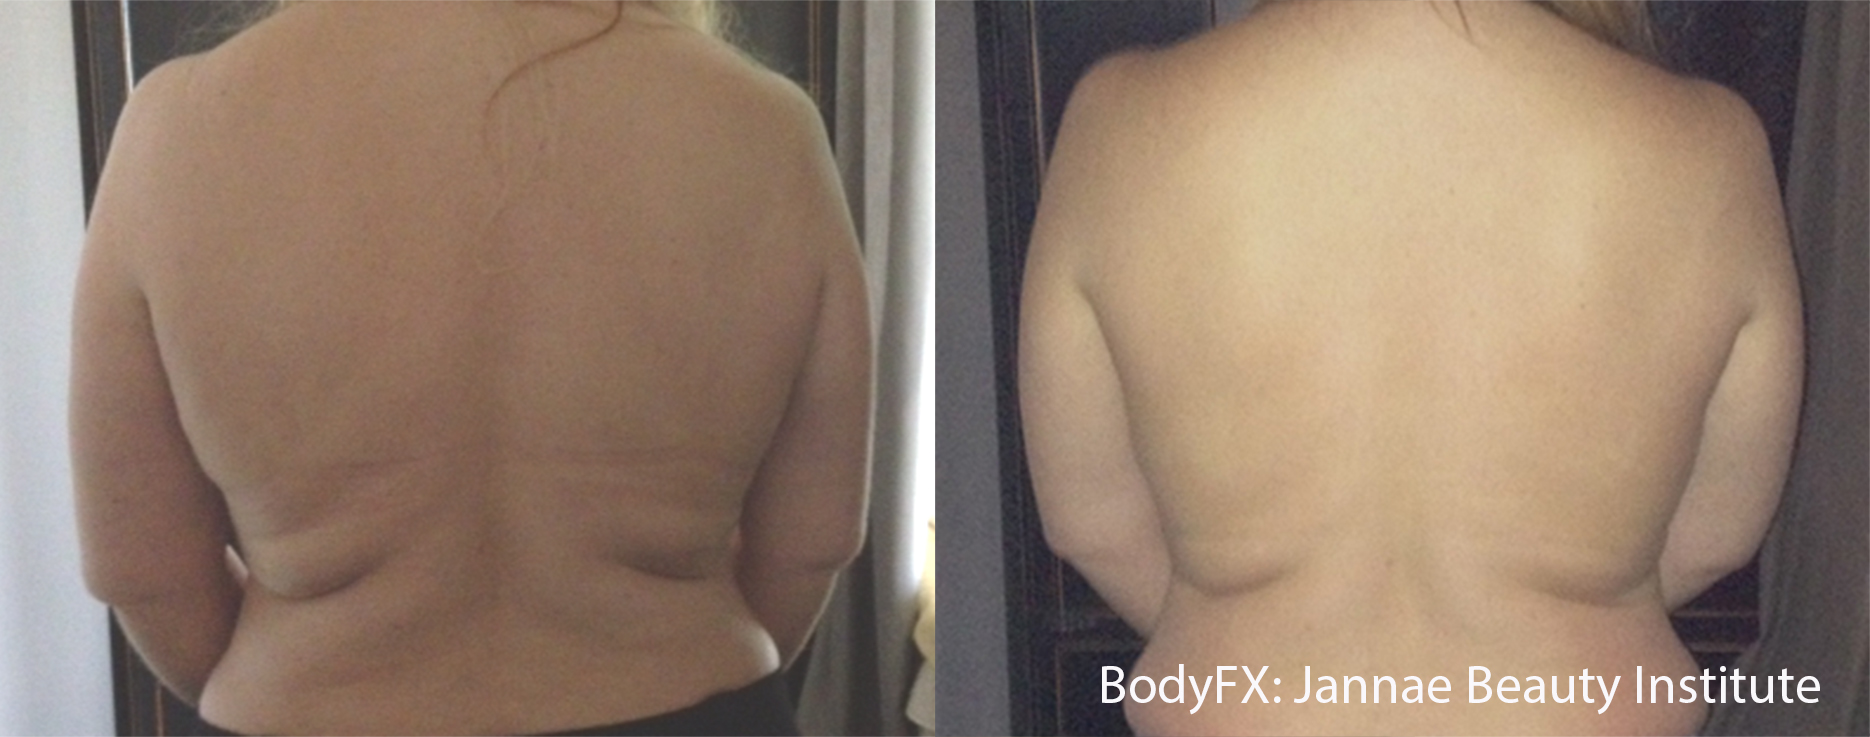 BodyFX_Before&After_006